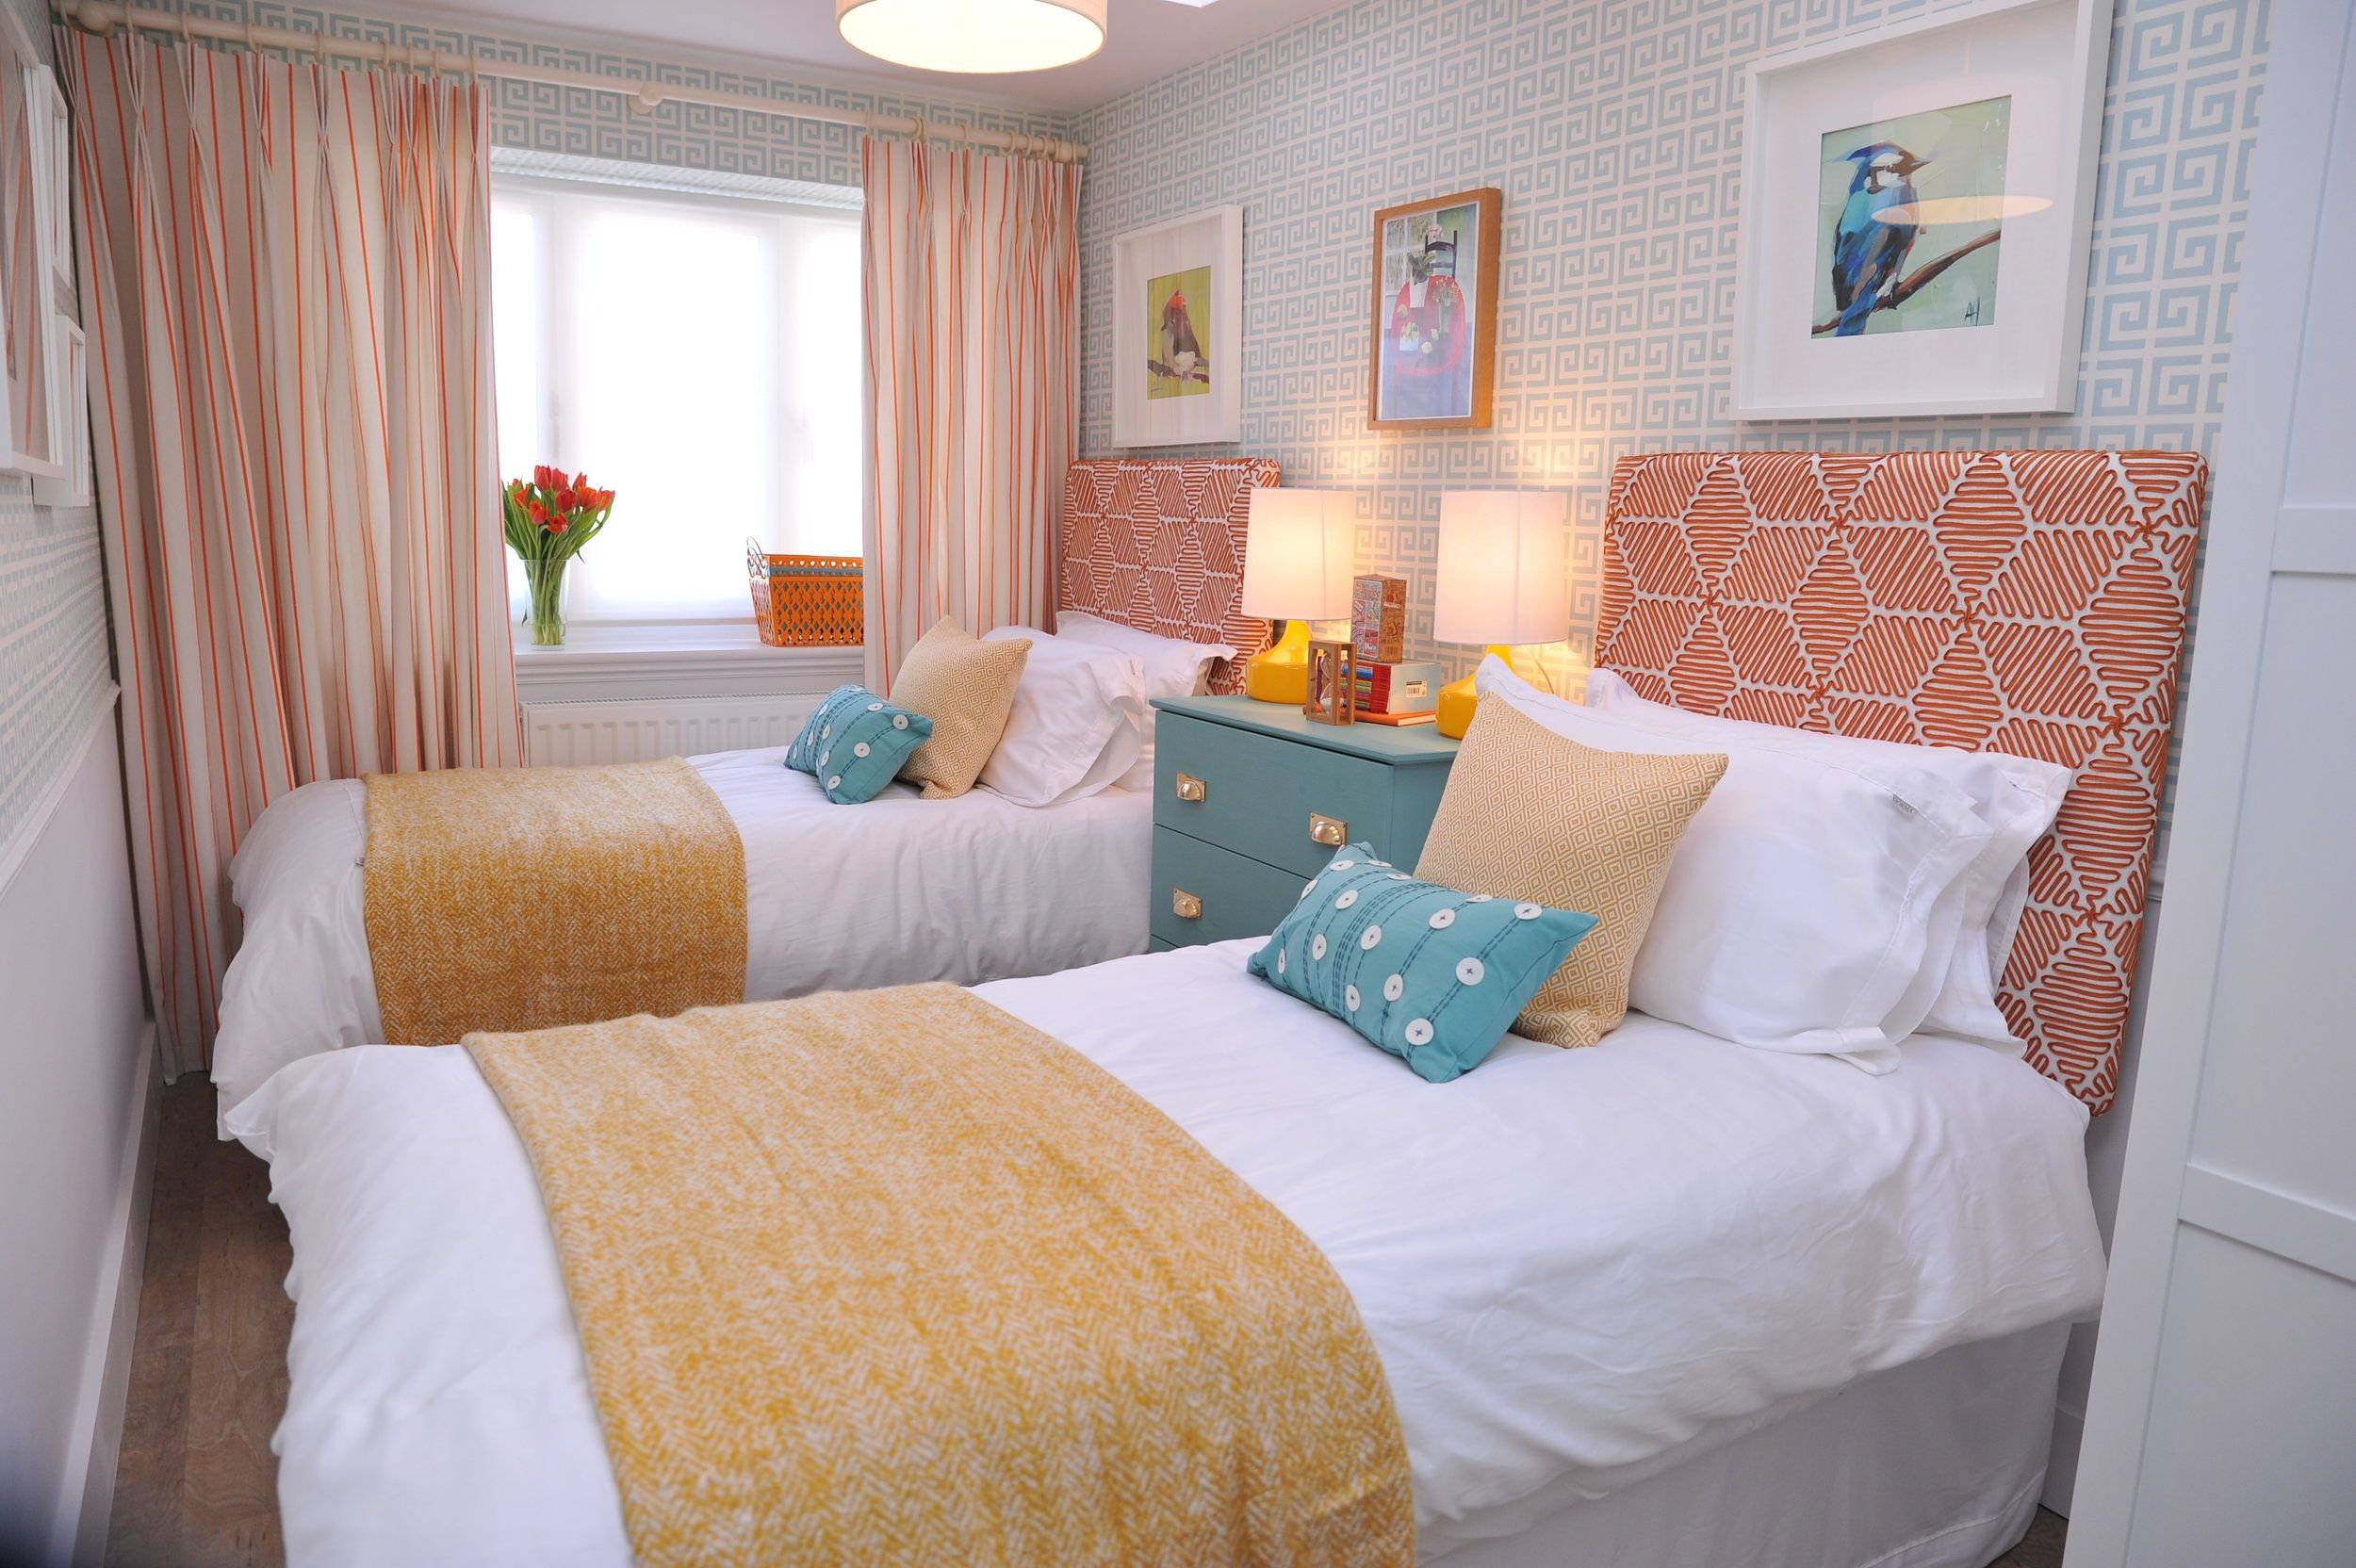 Twin bedroom with a blue geometric wallpaper and orange